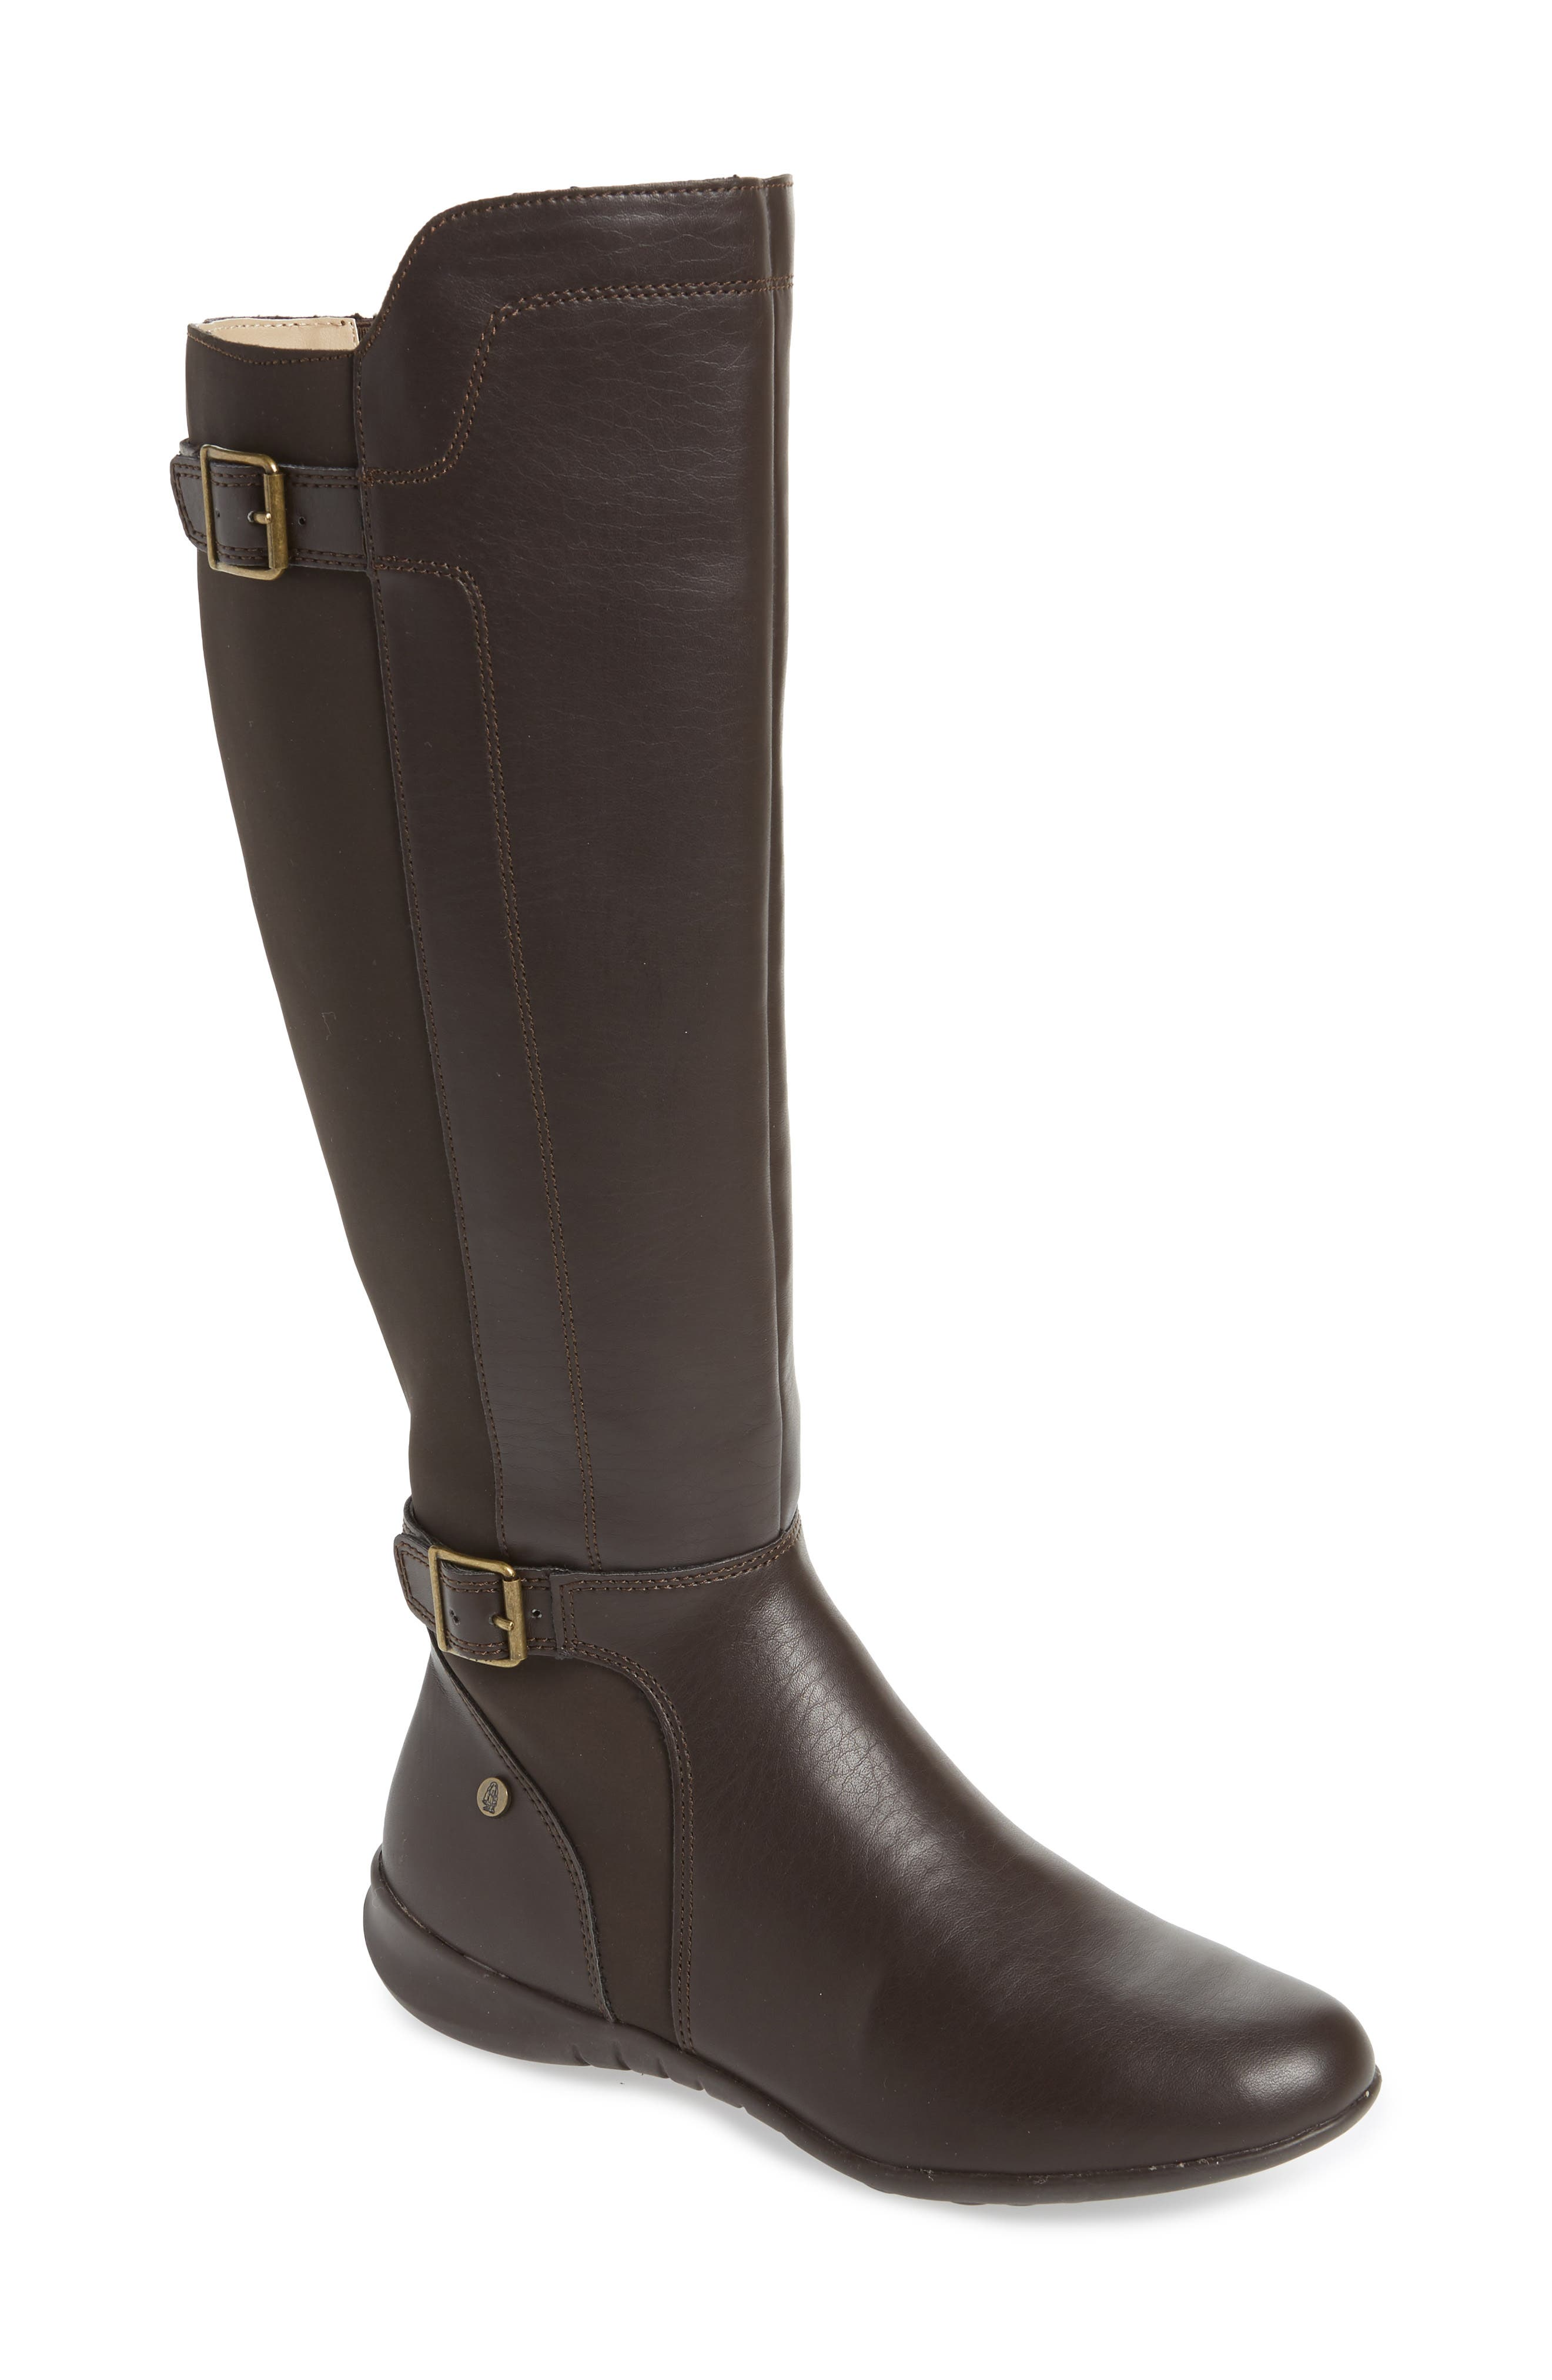 HUSH PUPPIES<SUP>®</SUP> Bria Knee High Boot, Main, color, DARK BROWN FAUX LEATHER